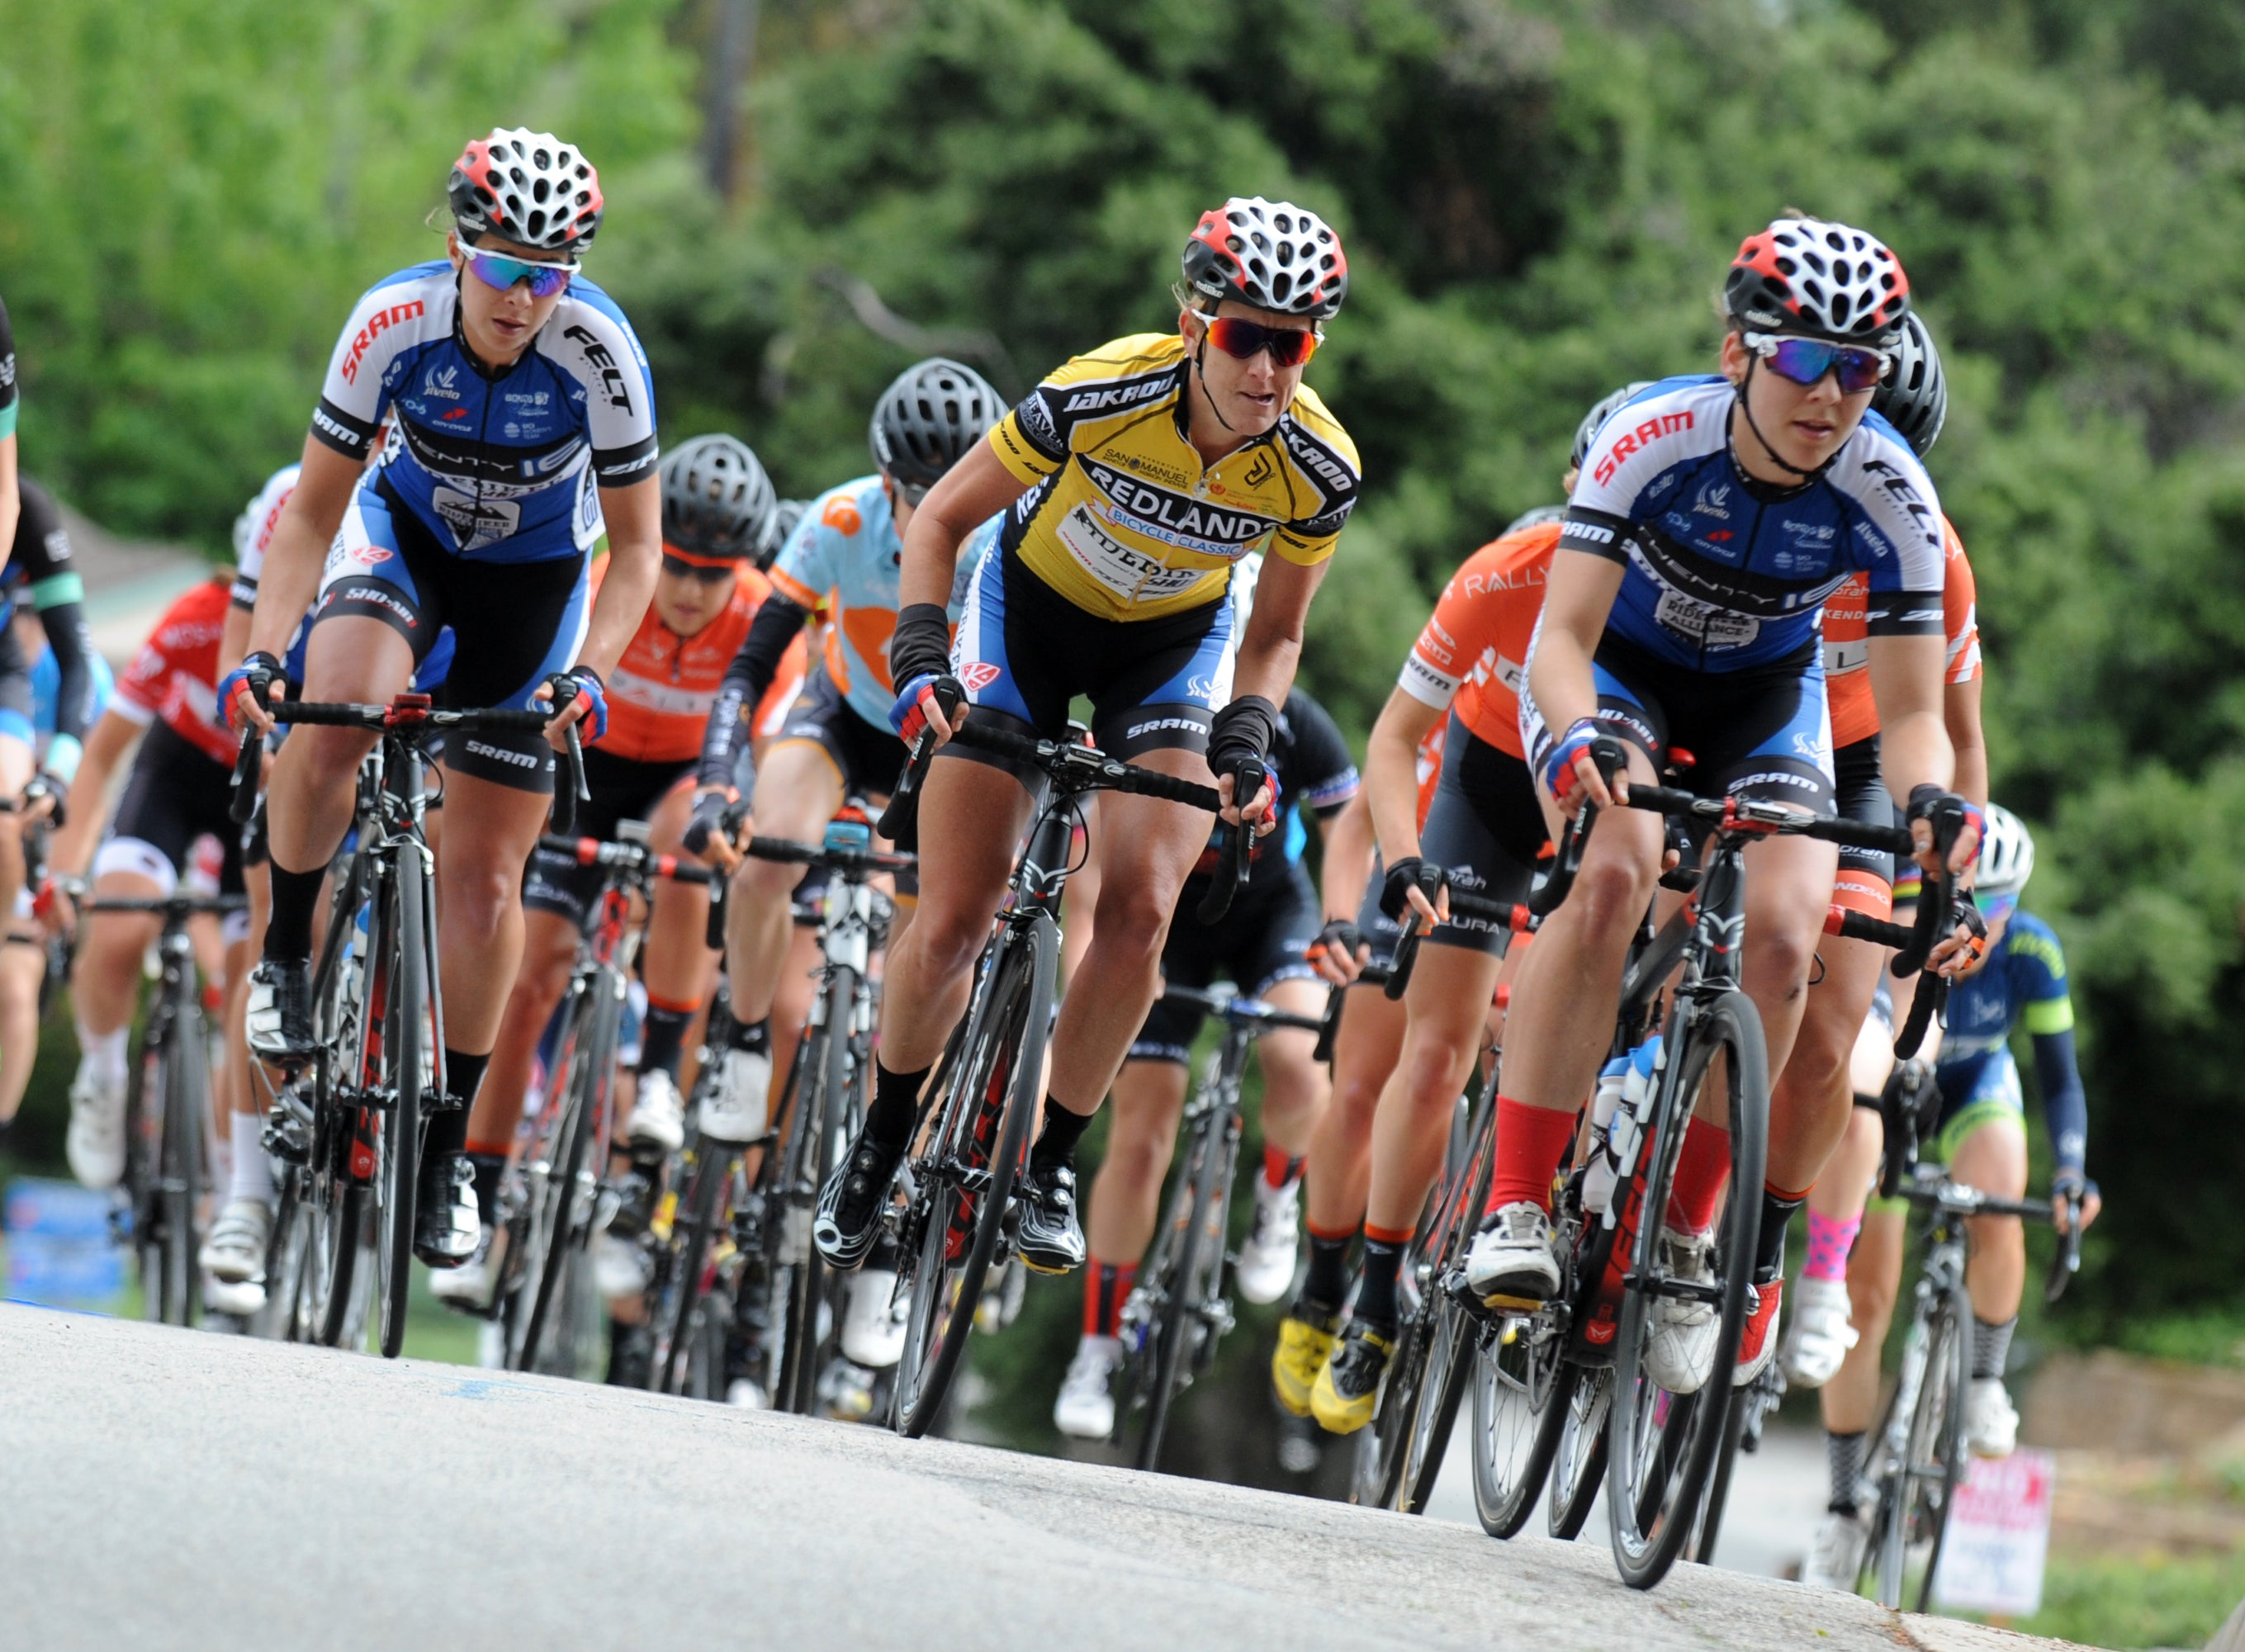 women bike riders race in cycling event